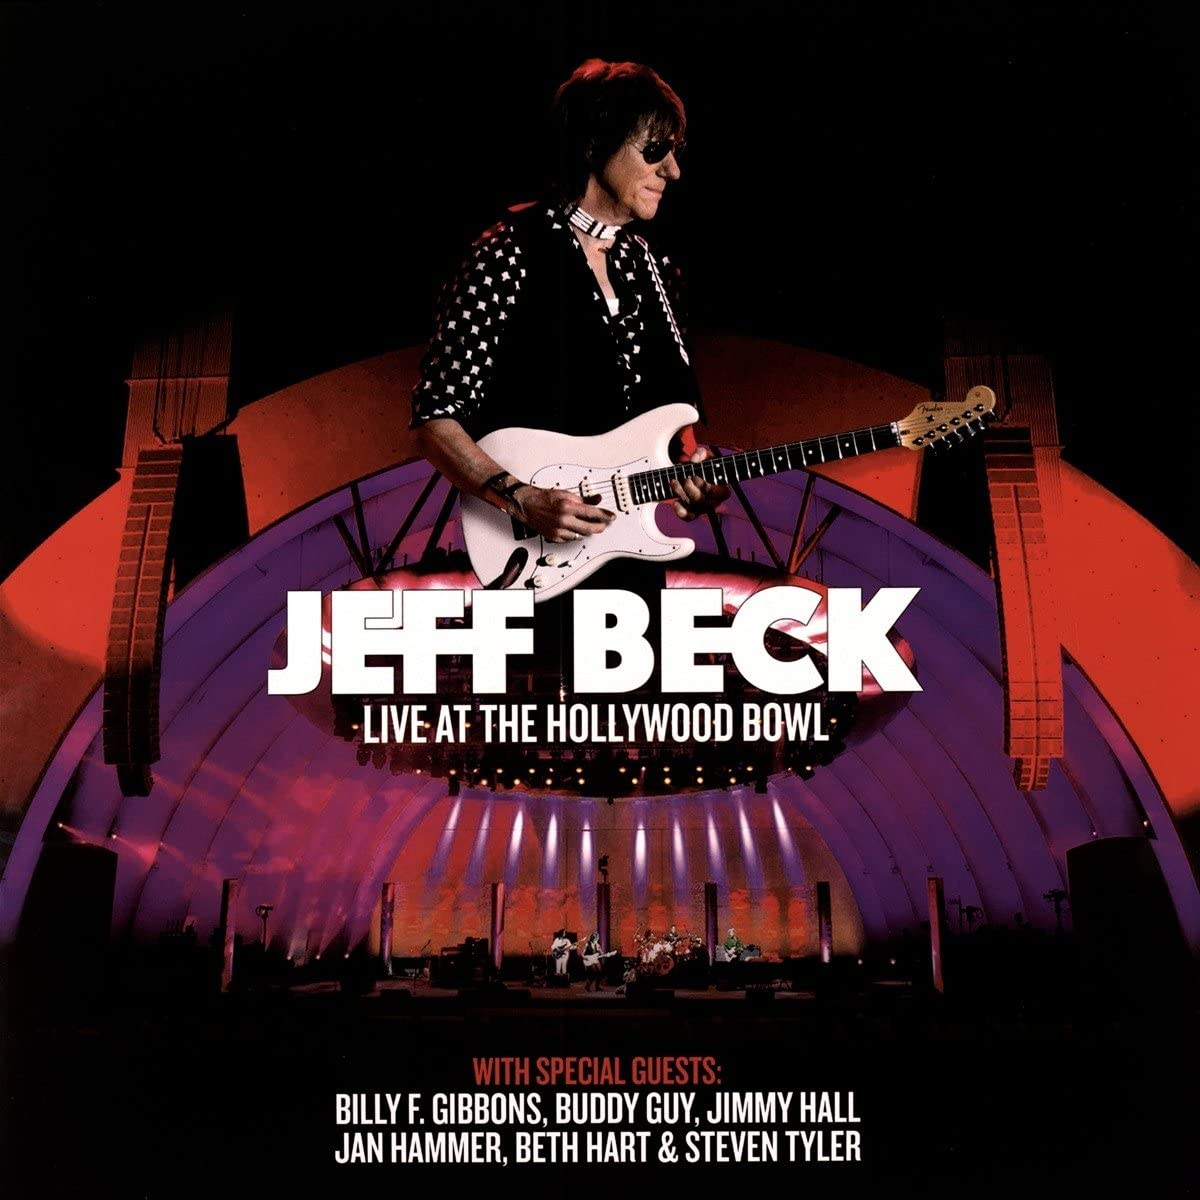 Jeff Beck - Live At The Hollywood Bowl 3LP